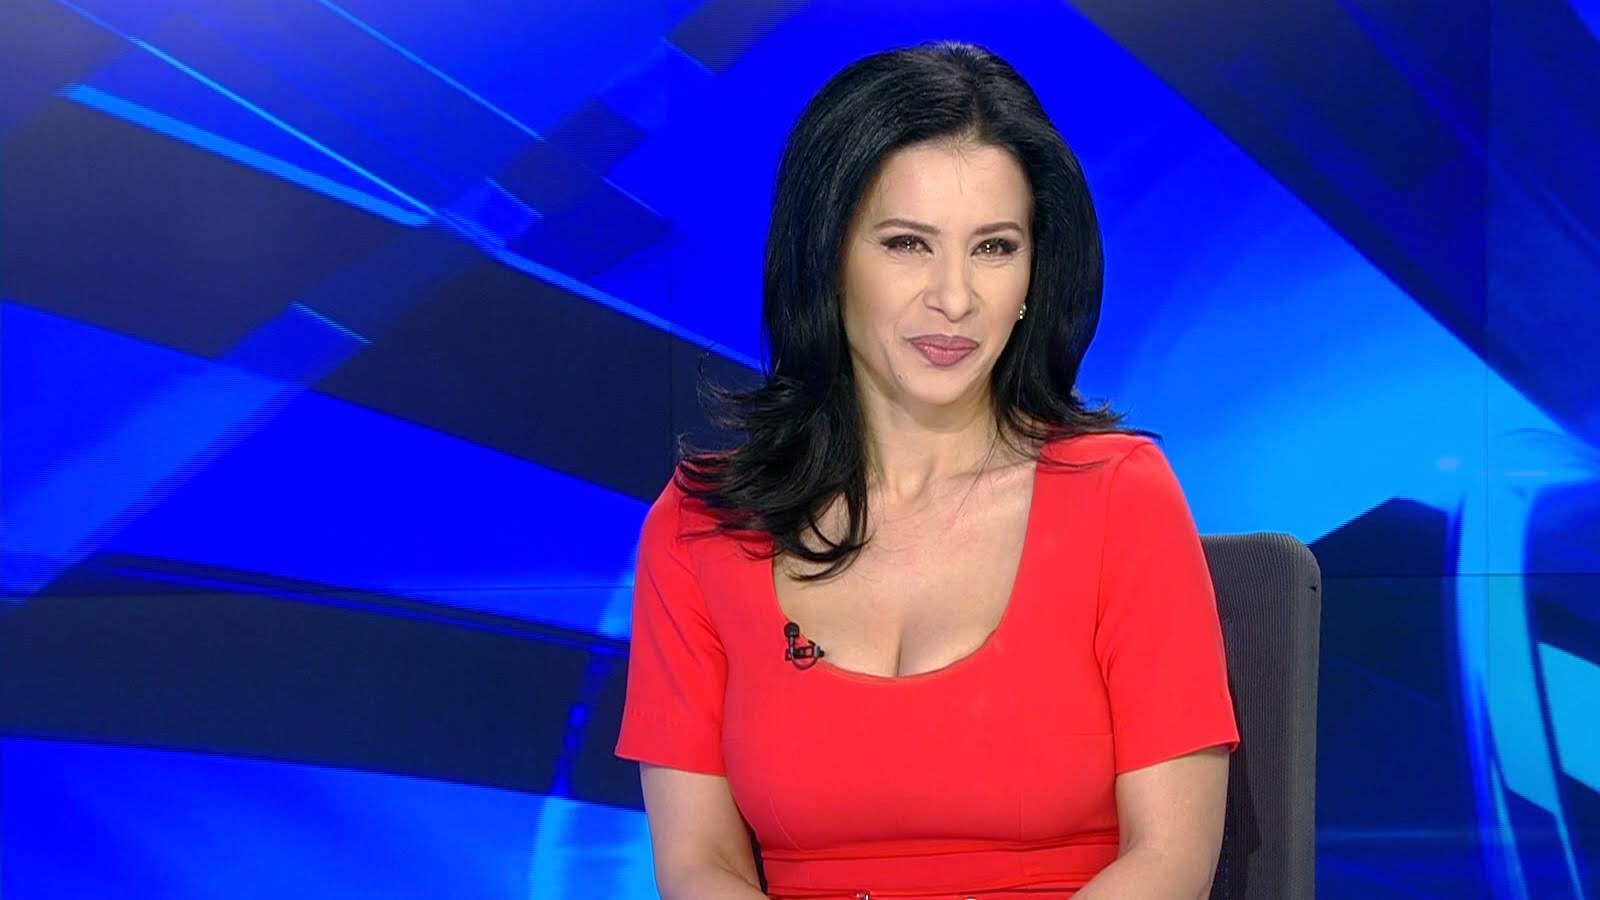 Red hot news anchor